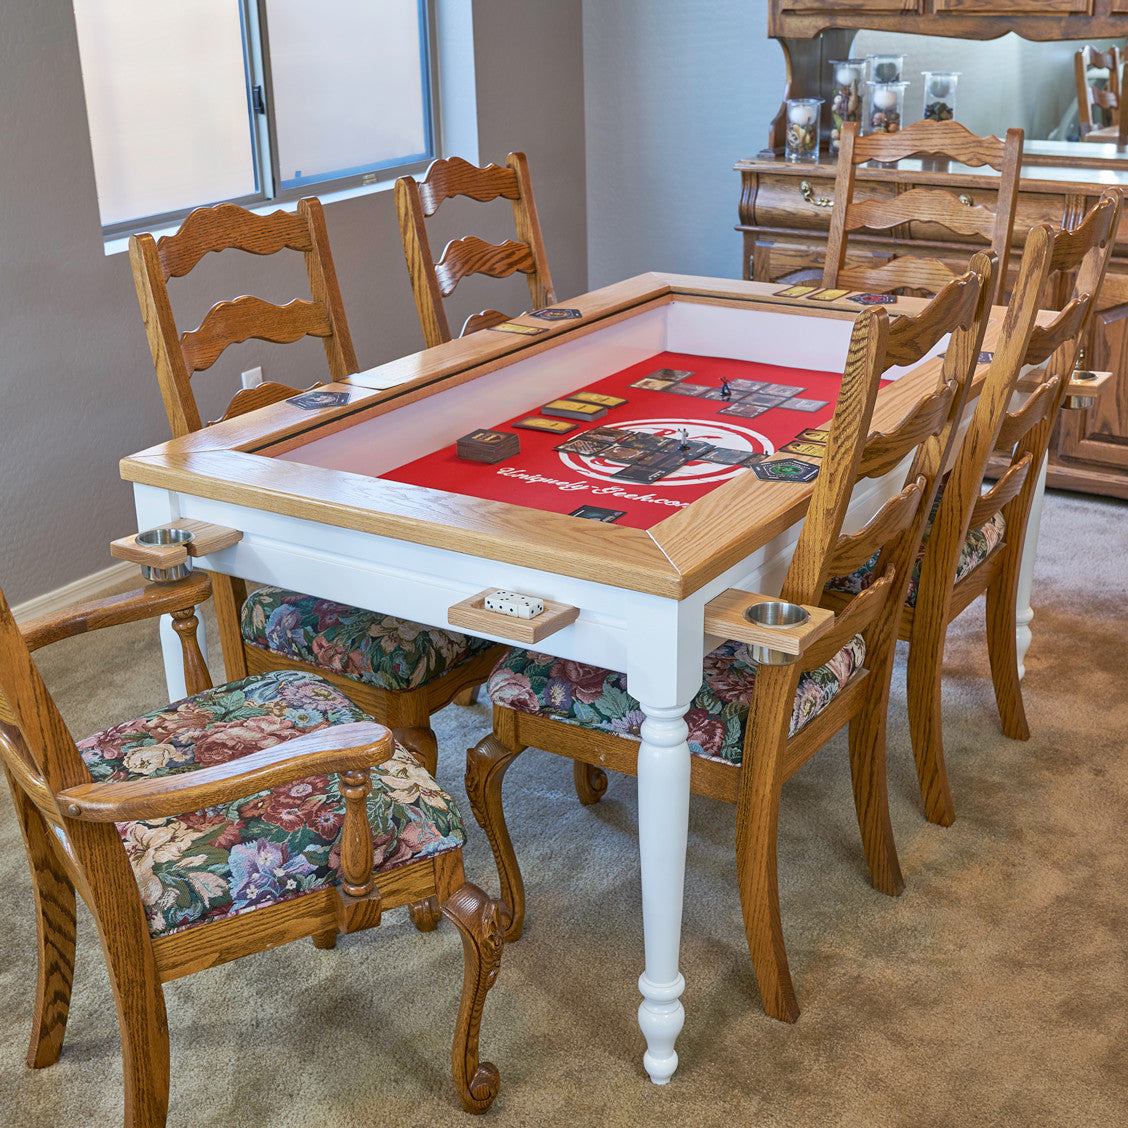 The Earl Farmhouse Custom Gaming Table With Lid Off Set Up For Gaming In A  Kitchen ...